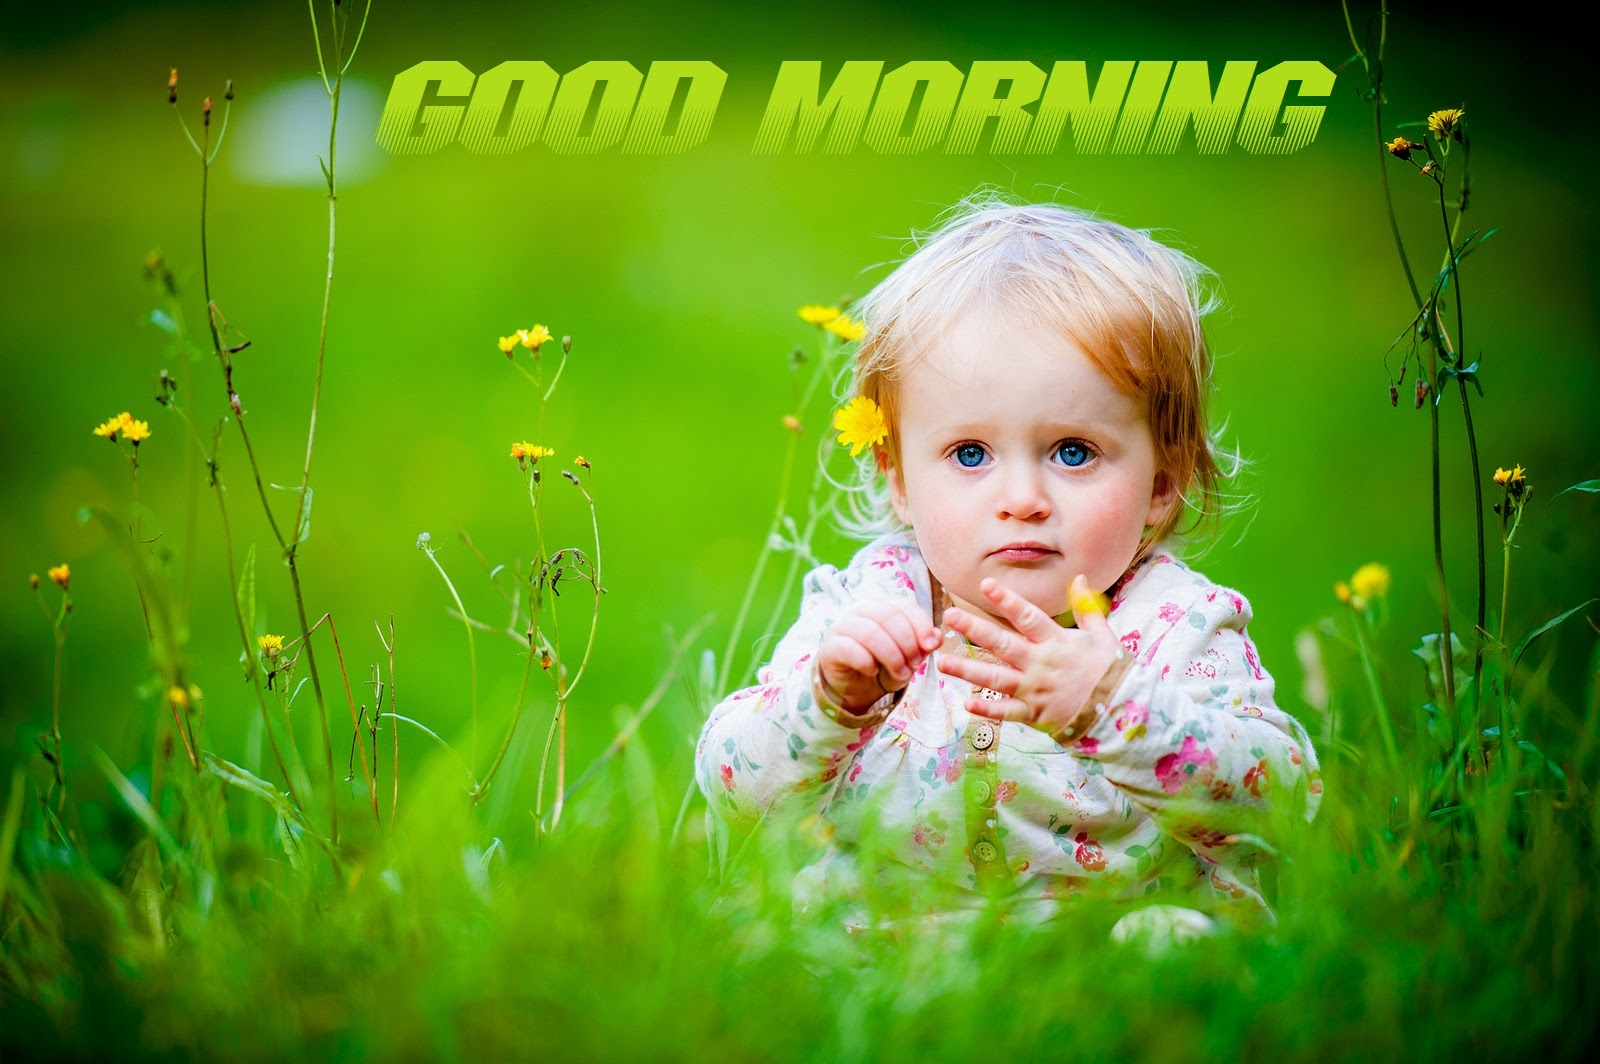 Good Morning Baby Cute : Cute baby girl good morning wishes wallpapers pictures